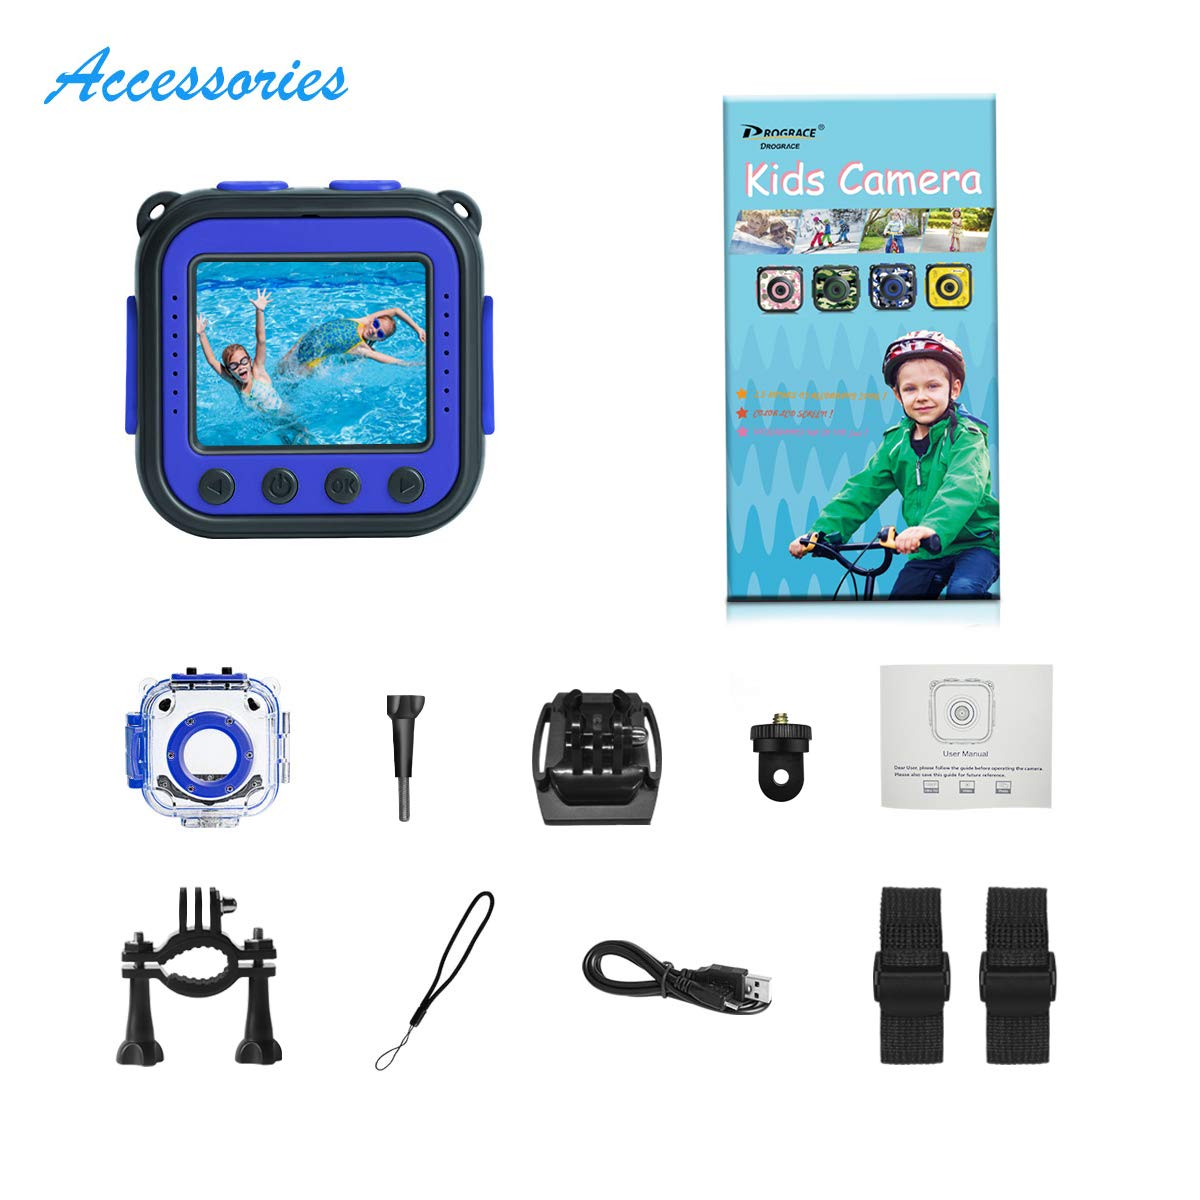 [Upgraded] PROGRACE Kids Waterproof Camera Action Video Digital Camera 1080 HD Camcorder for Boys Toys Gifts Build-in Game(Blue)  by Prograce (Image #6)